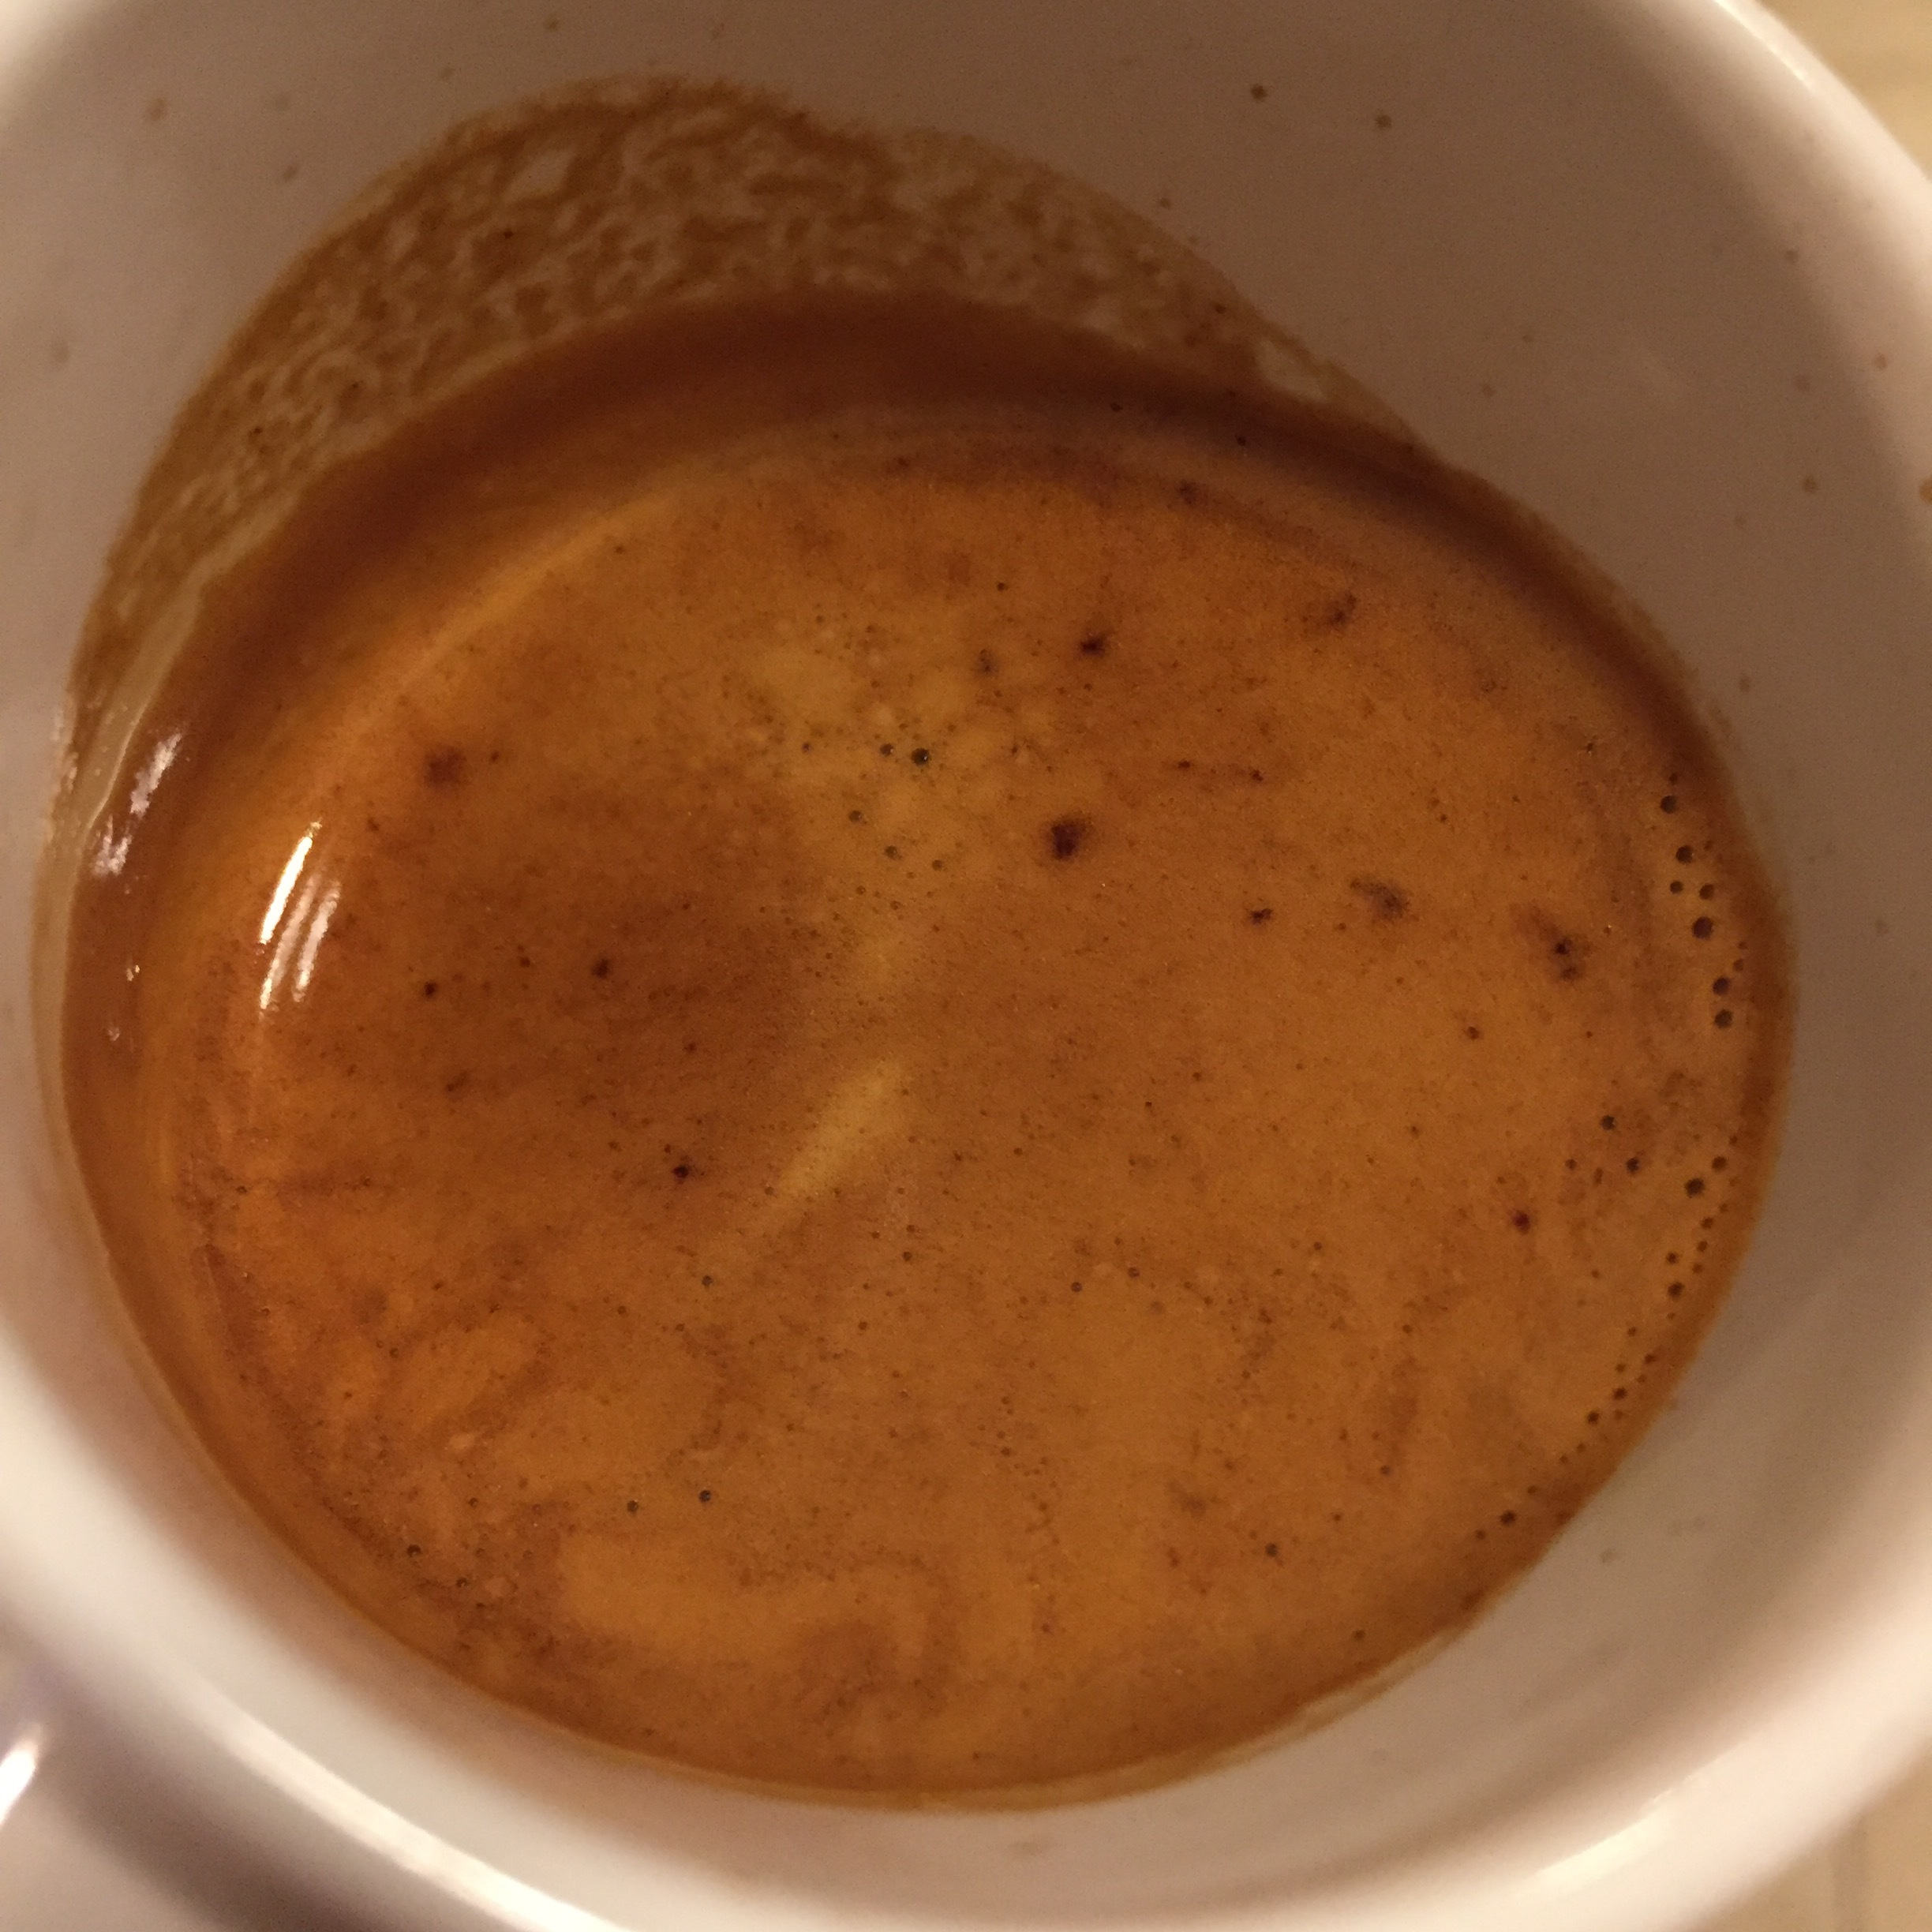 A very densely sweet and bright espresso shot in the IMS basket.